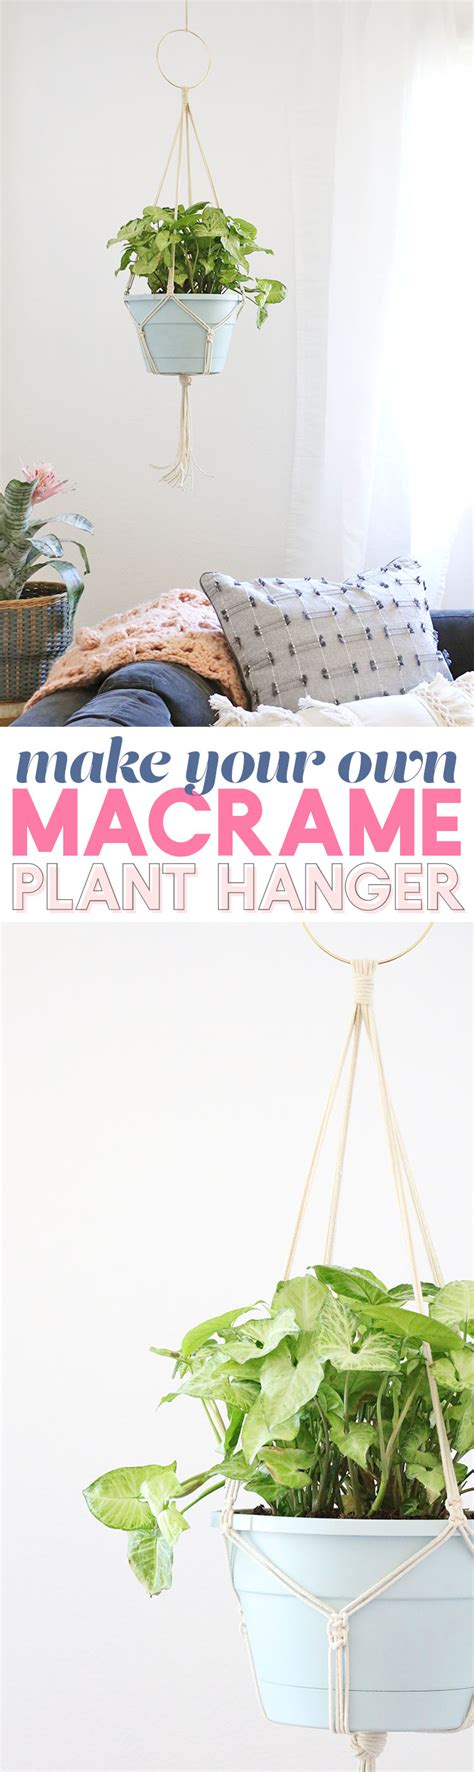 Make Your Own Macrame Plant Hanger - simple diy macrame plant hanger lou